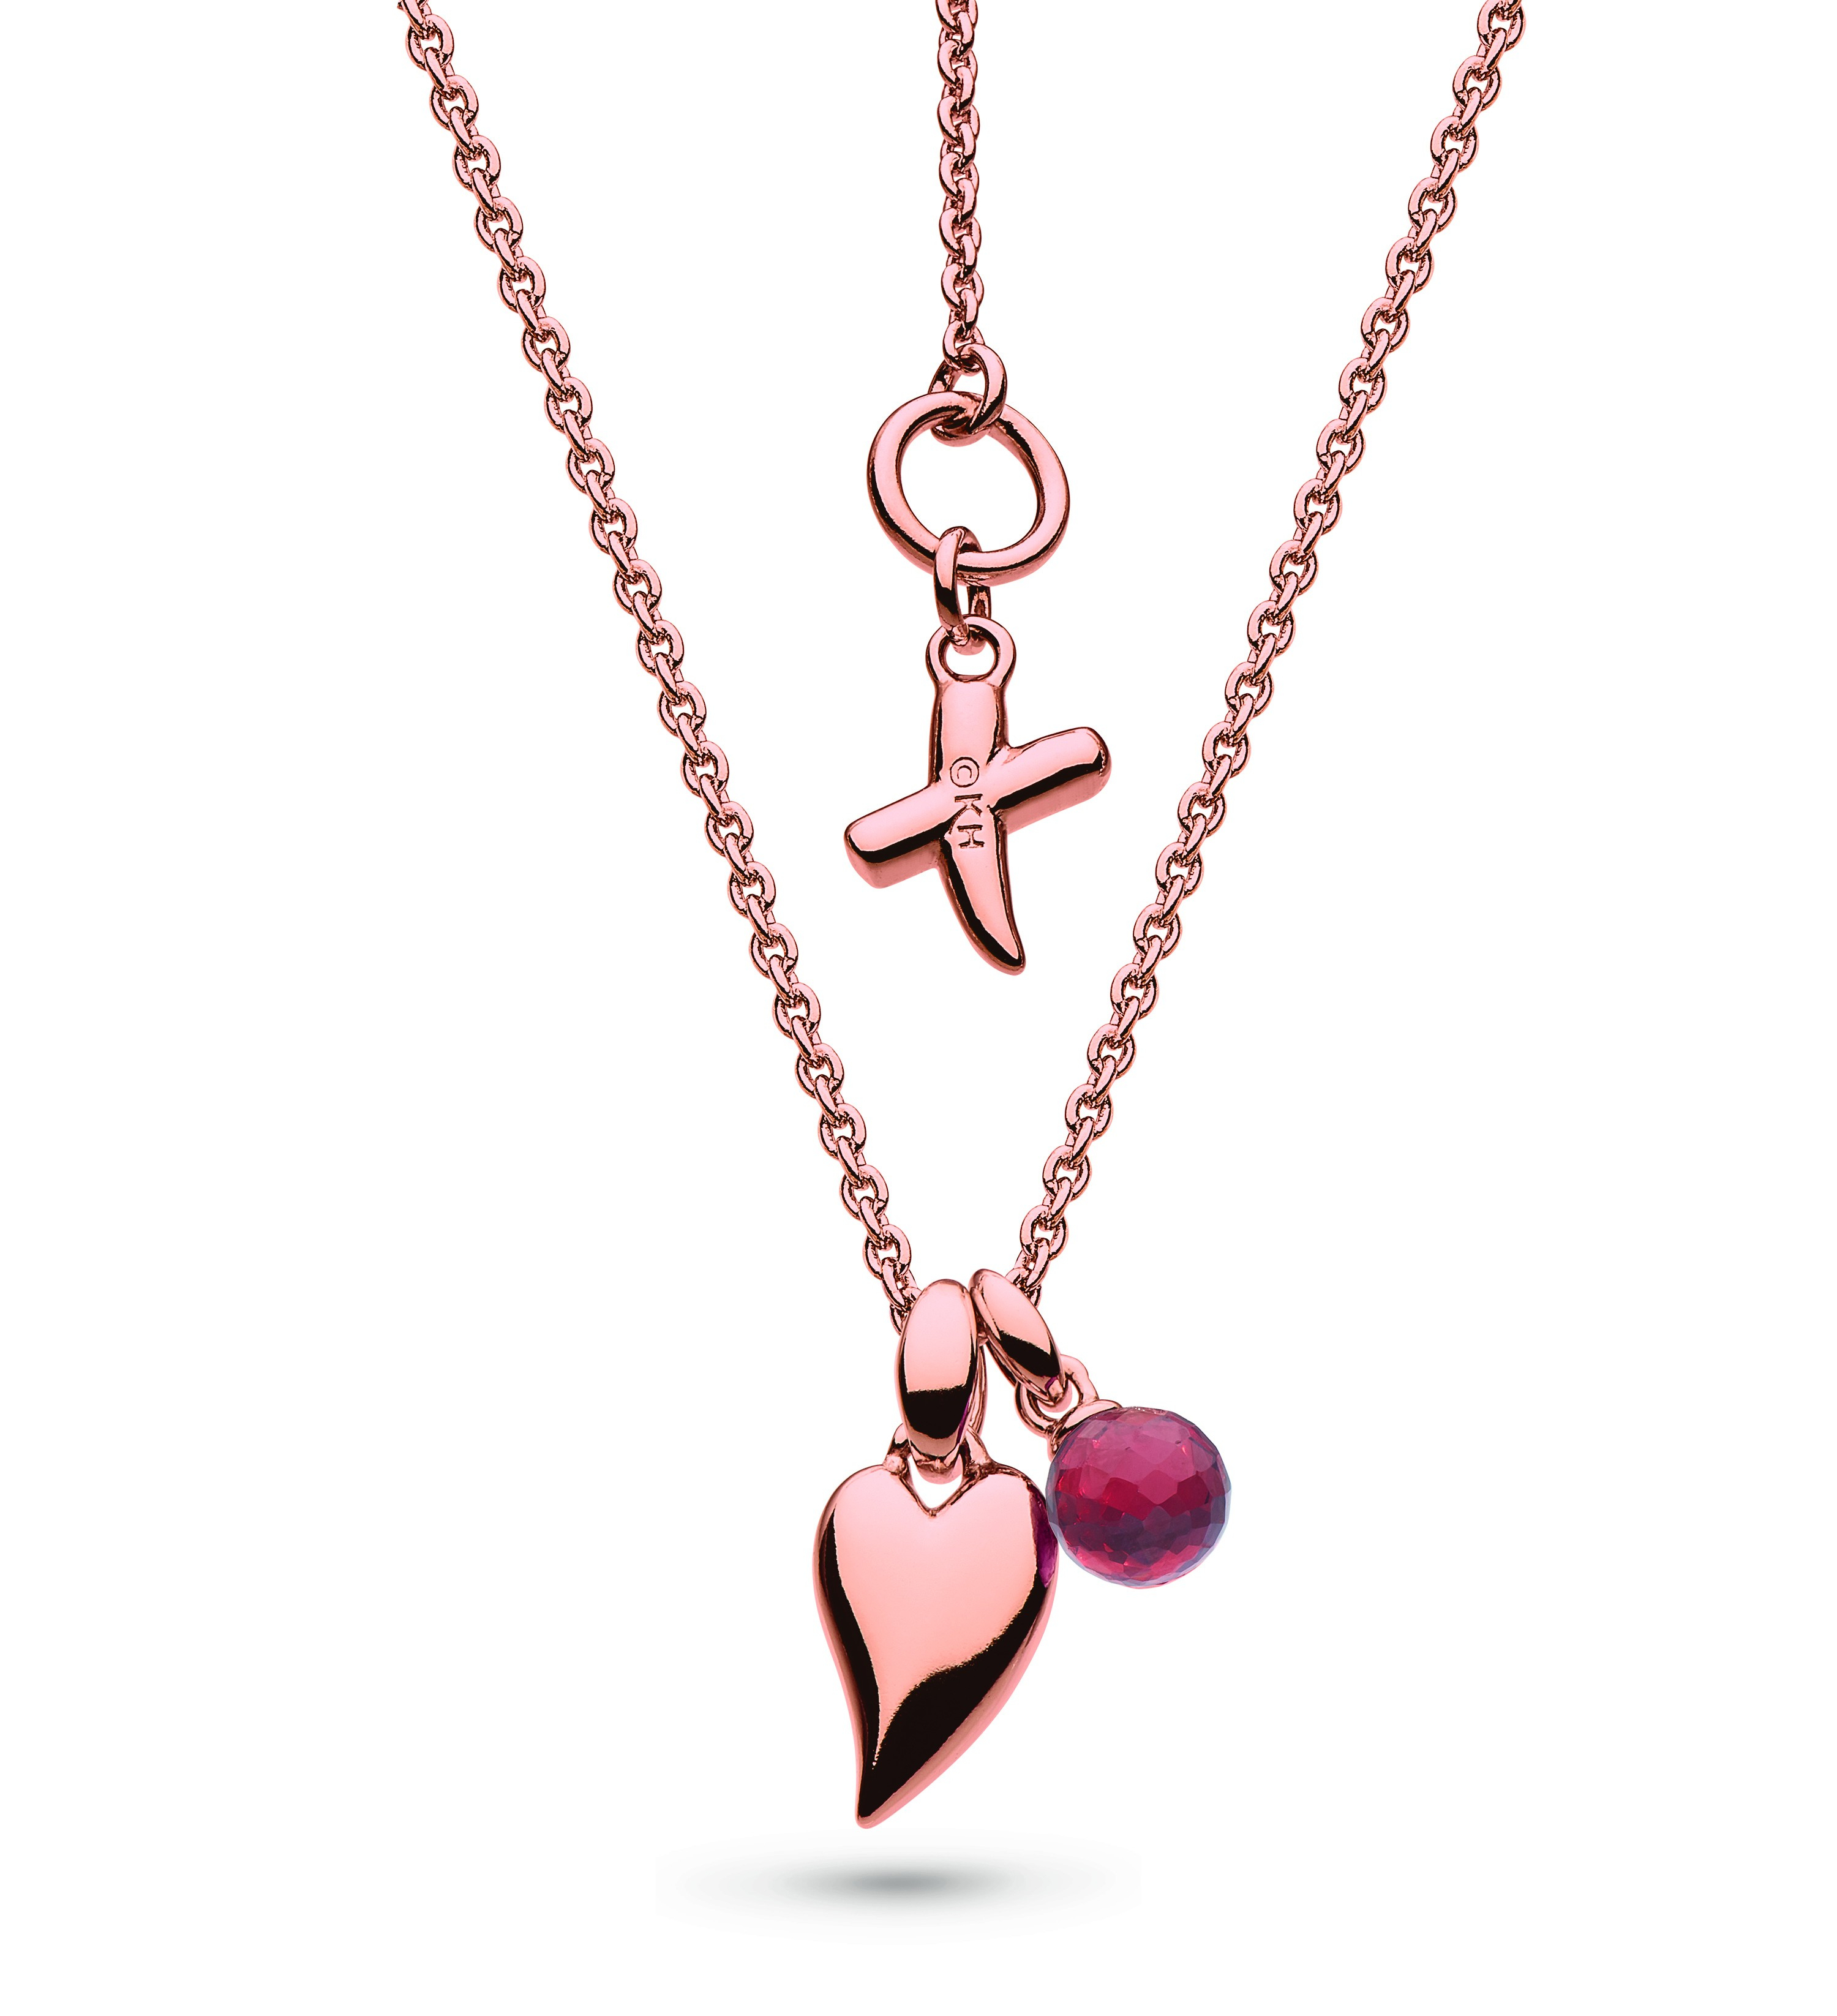 Kit Heath Desire Kiss Crush Rose Gold Plate & Mini Heart Garnet Droplet Necklace Pertaining To 2019 Garnet January Droplet Pendant Necklaces (View 15 of 25)